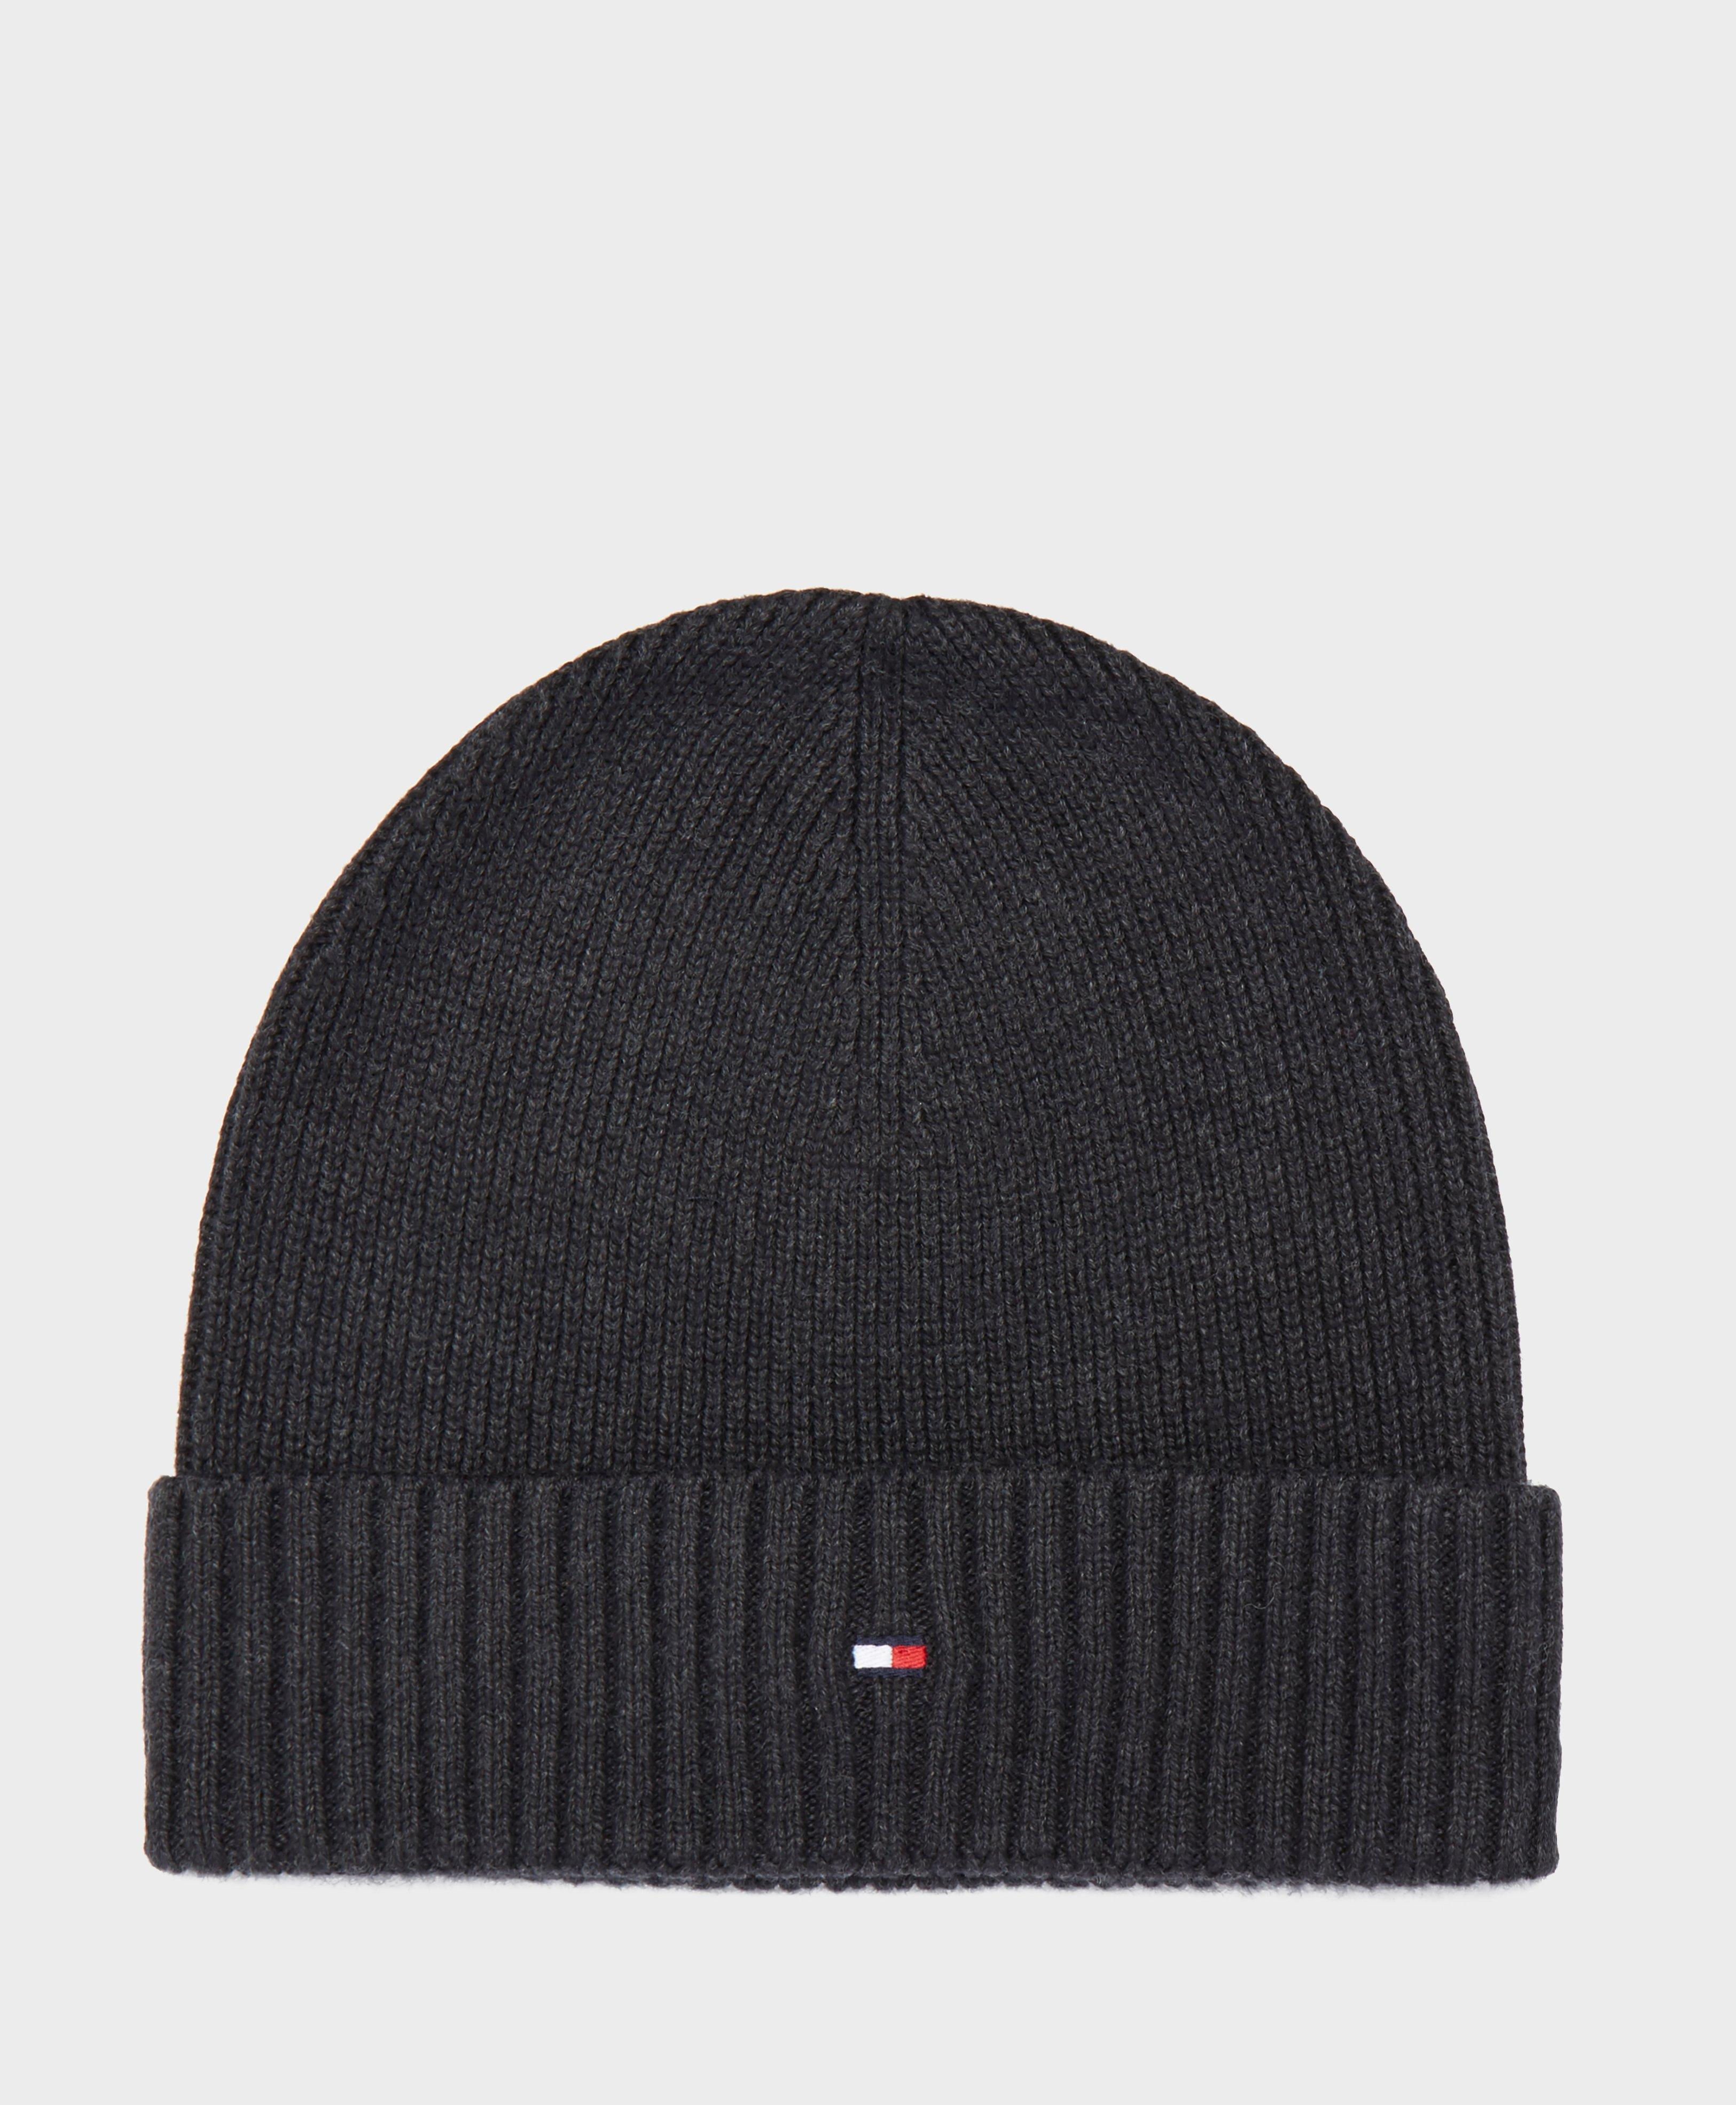 Tommy Hilfiger Small Flag Beanie for Men - Lyst c5dbbc28fc6